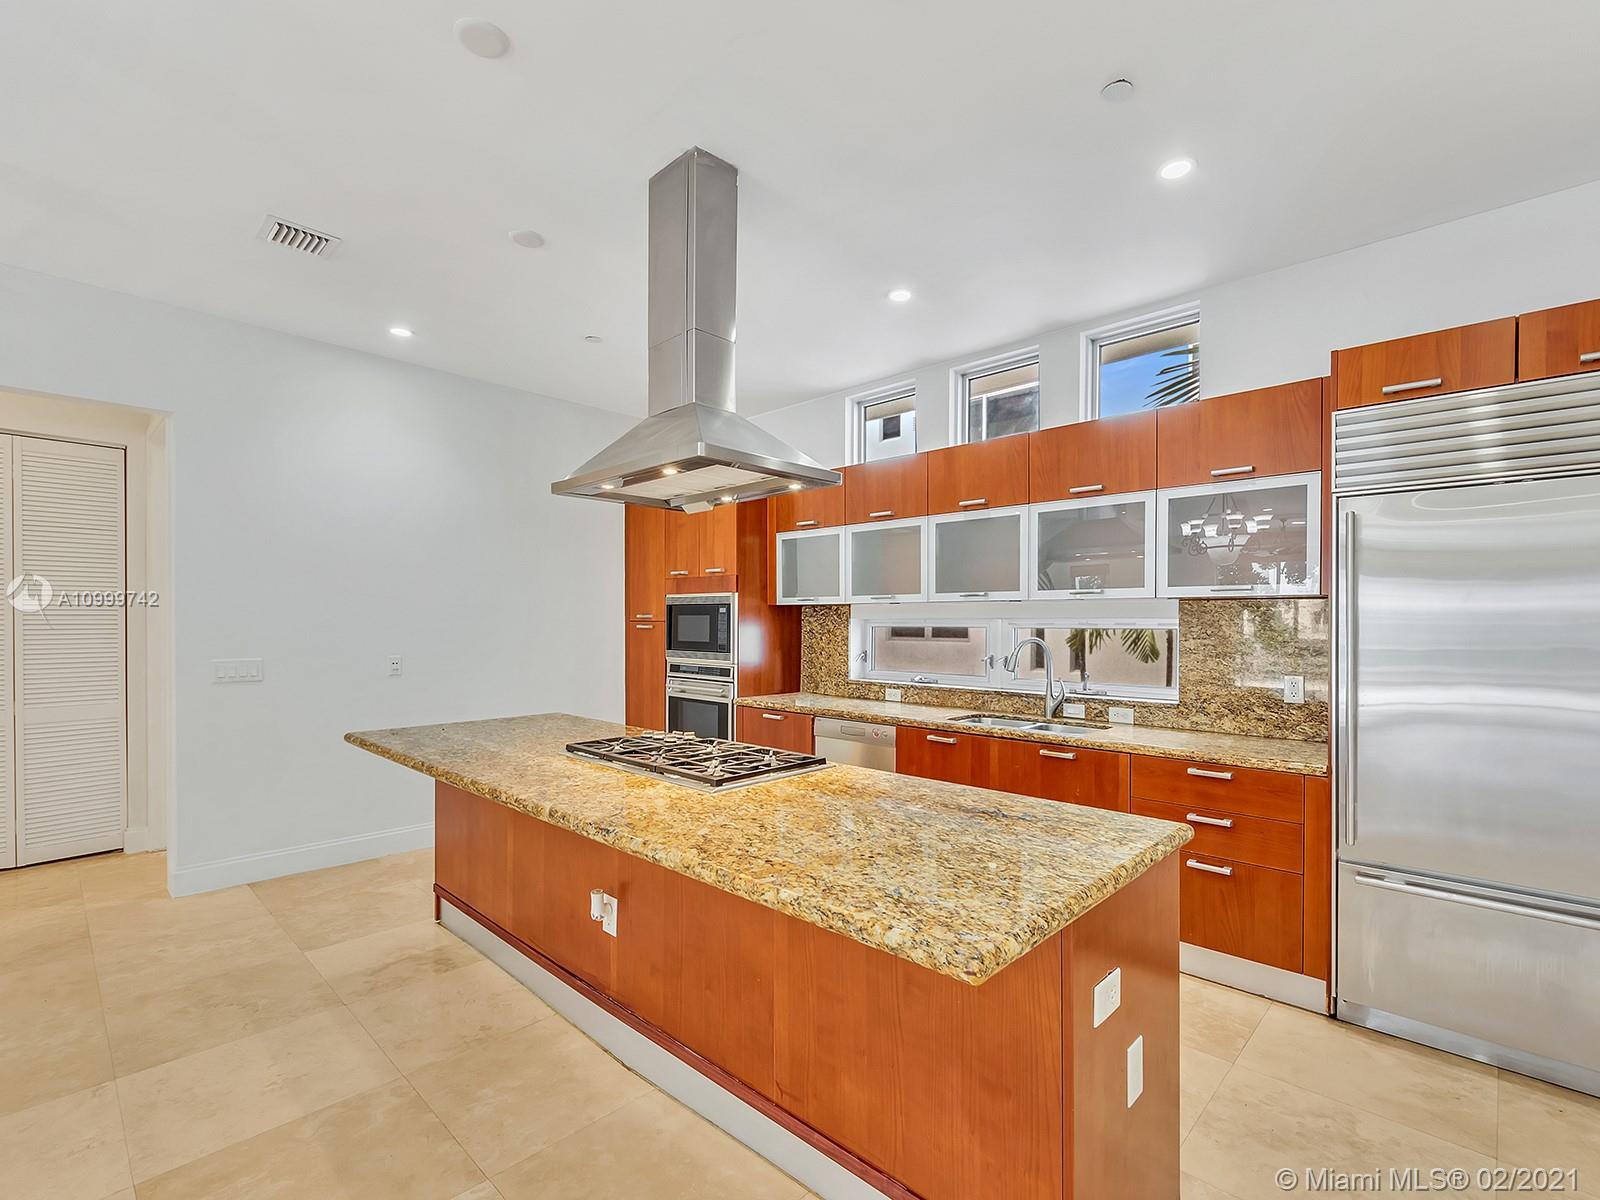 ELEGANT MODERN 3 STORY TOWNHOME-1/2 BLOCK TO BEACH-AWARD WINNING DESIGN-1ST FLOOR FEATURES FOYER ENTRANCE-LARGE BEDROOM-BATHROOM-WALK IN CLOSET-ELEVATOR-2 CAR GARAGE; 2ND FLOOR FEATURES BRIGHT-WIDE OPEN SPACE-HIGH CEILING-OPEN GOURMET KITCHEN-CENTER ISLAND-GAS COOKING-PANTRY-LAUNDRY ROOM-HALF BATH; 3RD FLOOR FEATURES DOUBLE DOORS TO MASTER SUITE-LARGE WALK IN CLOSET-BEAUTIFUL MASTER BATH, SEPARATE TUB & SHOWER-2 SINKS-GUEST SUITE, SATURNIA MARBLE FLOORING THROUGHOUT-ROOFTOP DECK-PETS ALLOWED. OK TO GRILL ON ROOF TOP TERRACE, OK TO PUT HOT TUB ON ROOFTOP TERRACE.